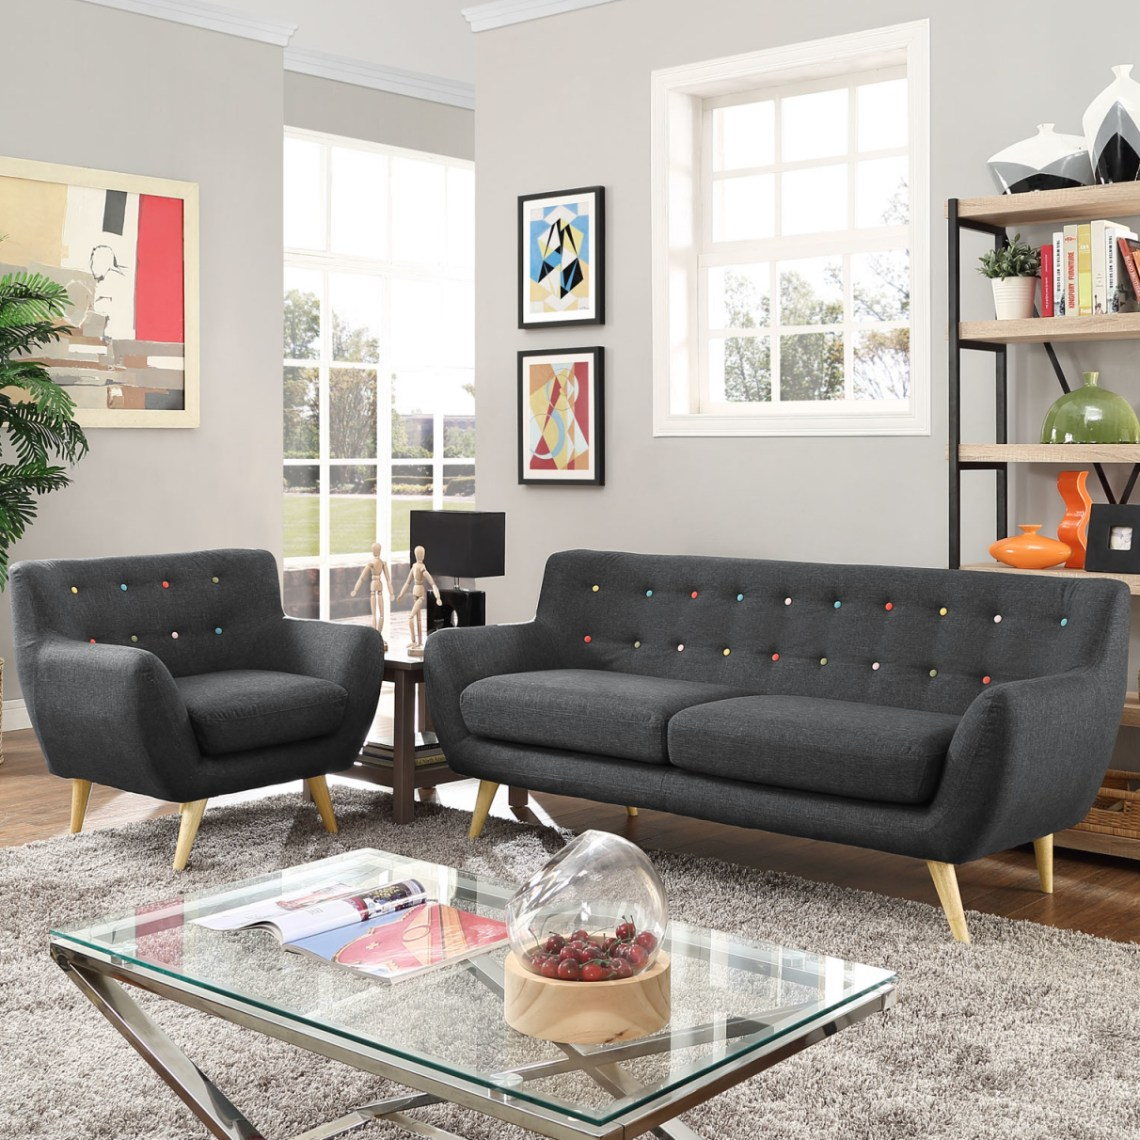 Round Sofa Chair Living Room Furniture Awesome Decors